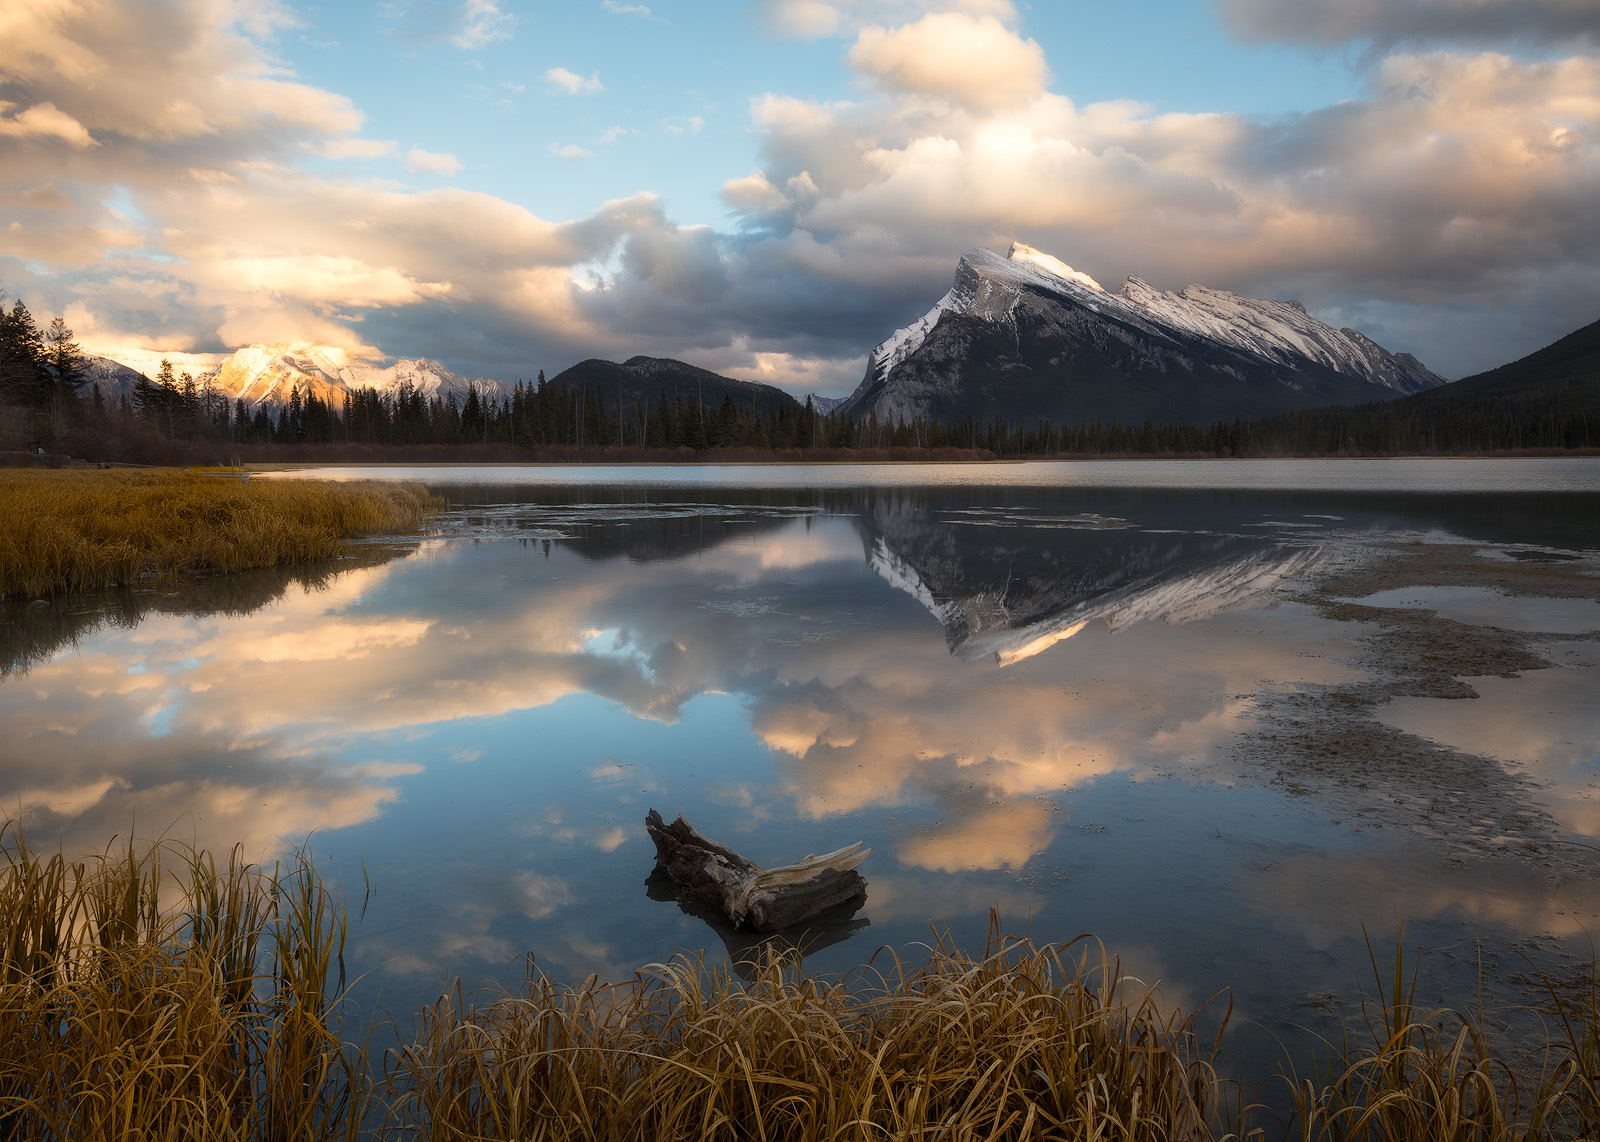 Mount Rundle reflecting in the still water of Vermillion Lakes on a quiet October evening.